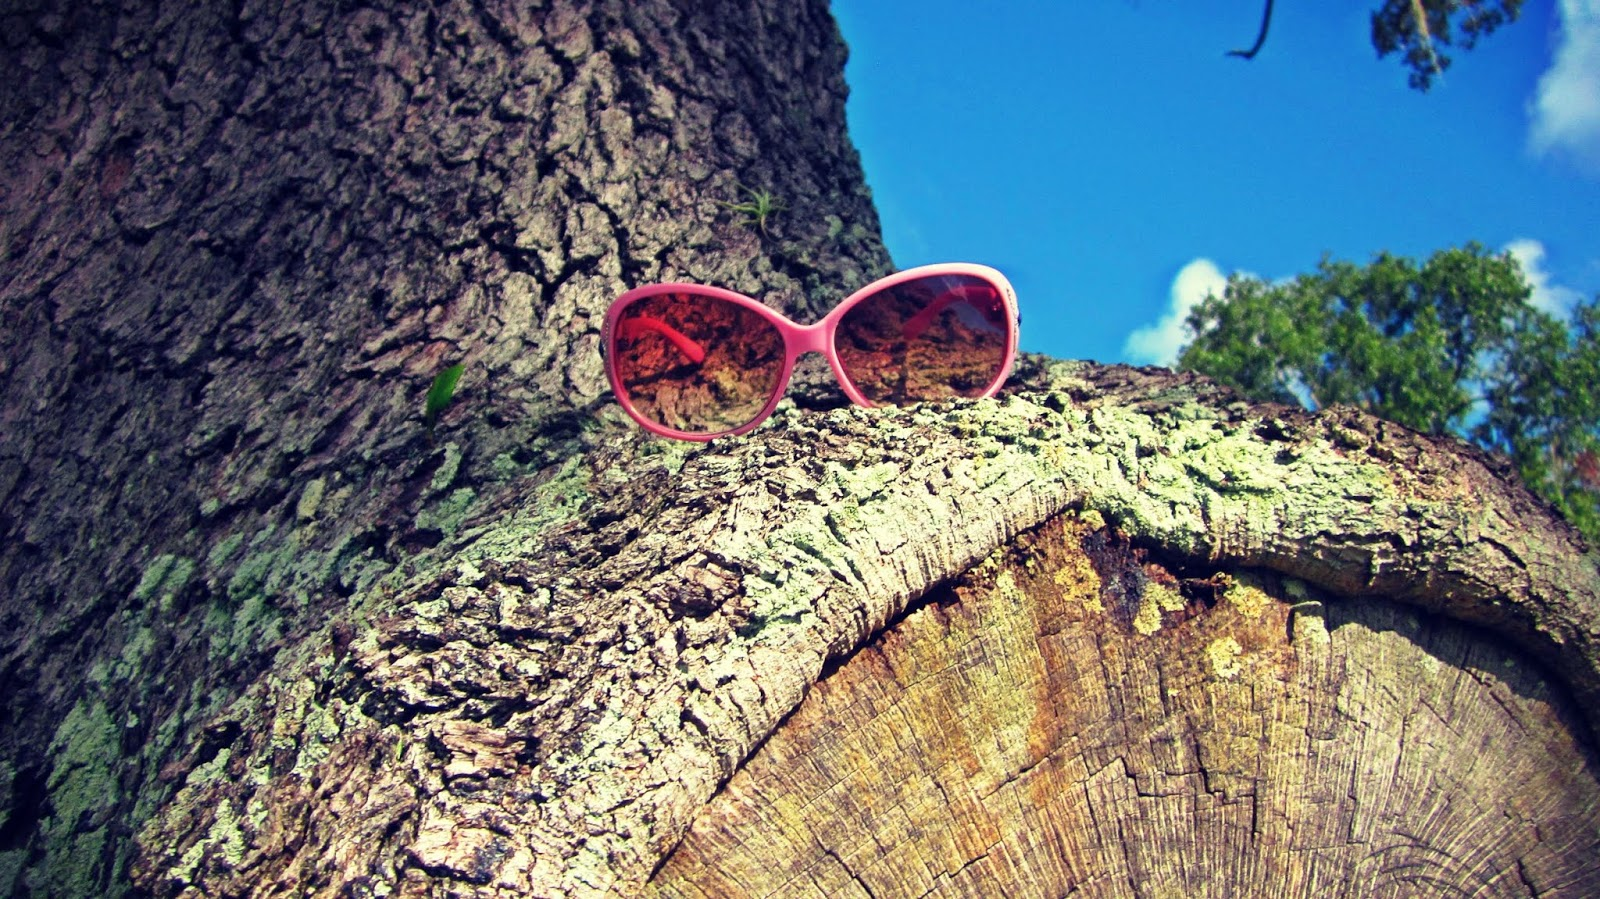 Forest Bathing in Nature With Trees and Rose-Colored Glasses